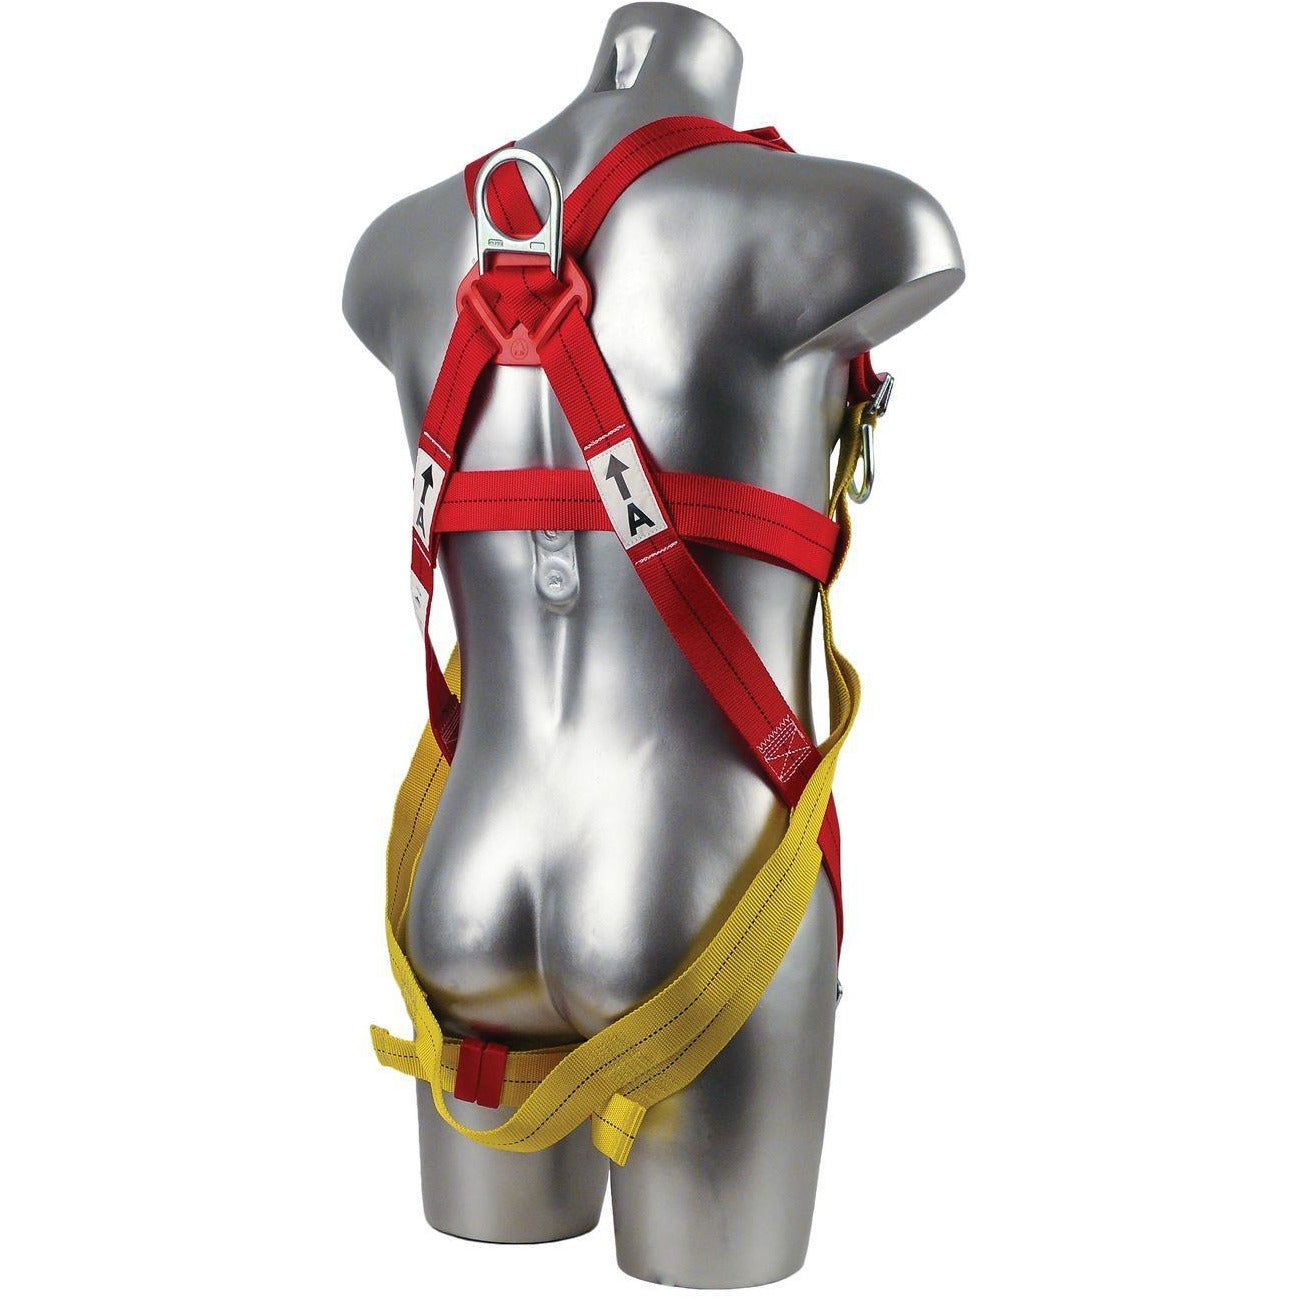 Portwest Portwest 2 Point Harness Plus Red One Size  FP10